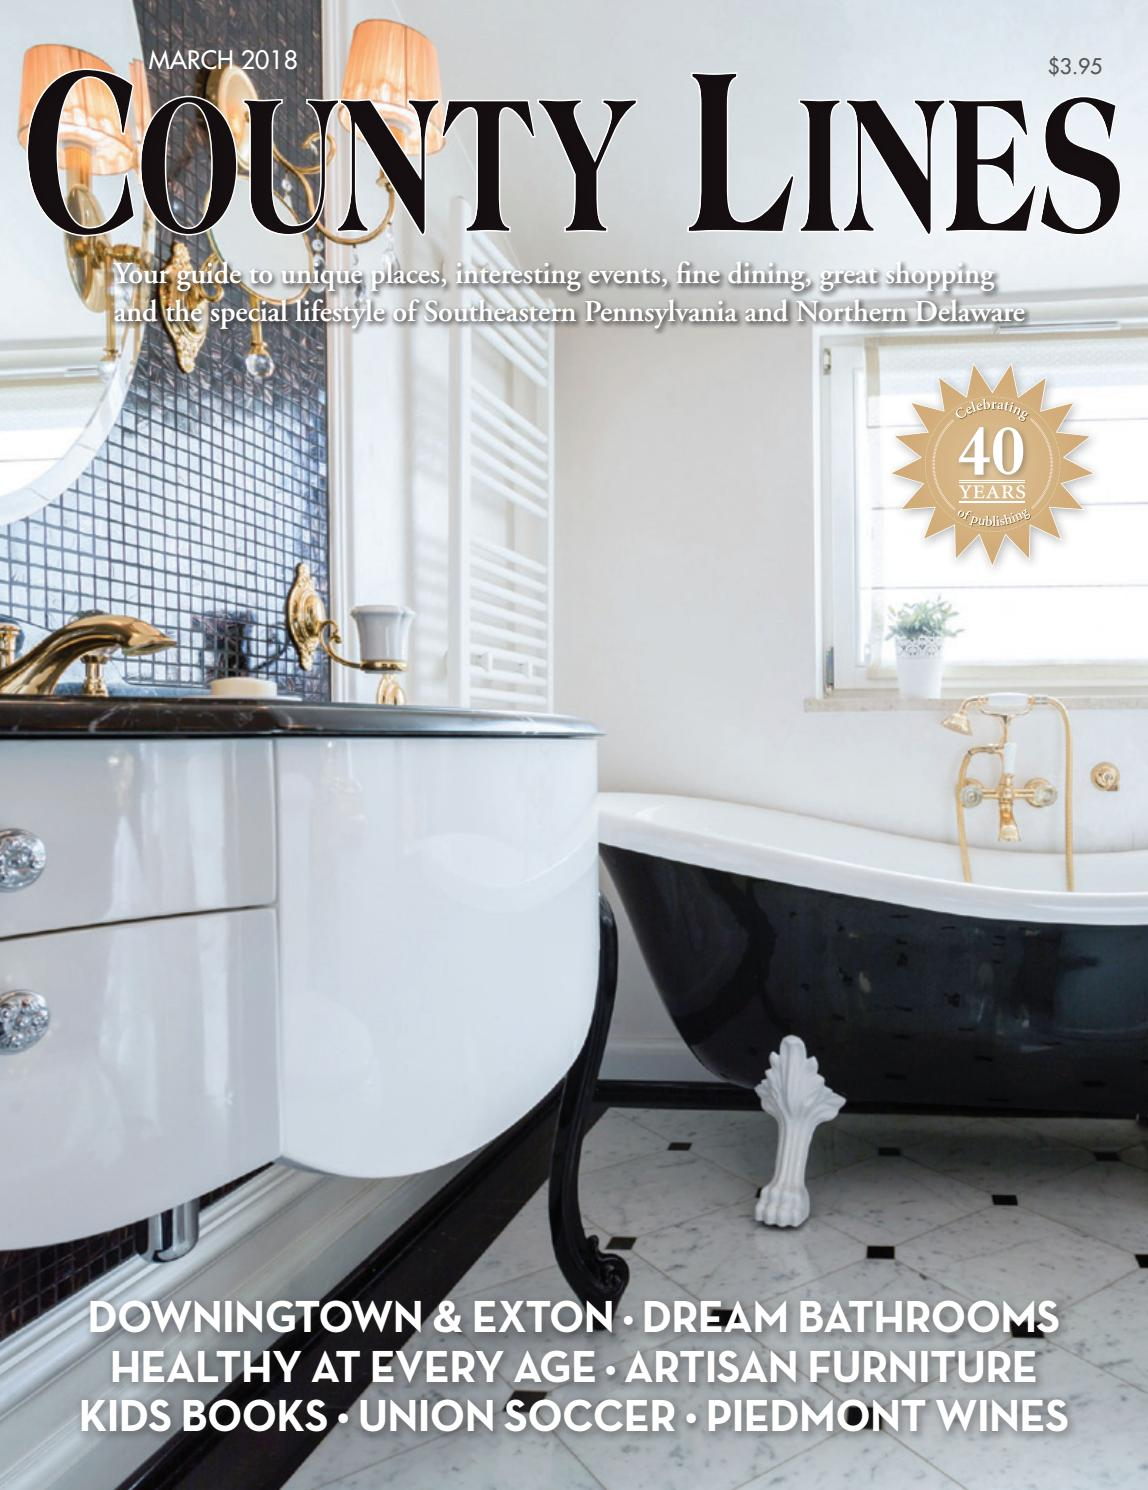 County Lines Magazine - Mar 18 by County Lines Magazine - issuu